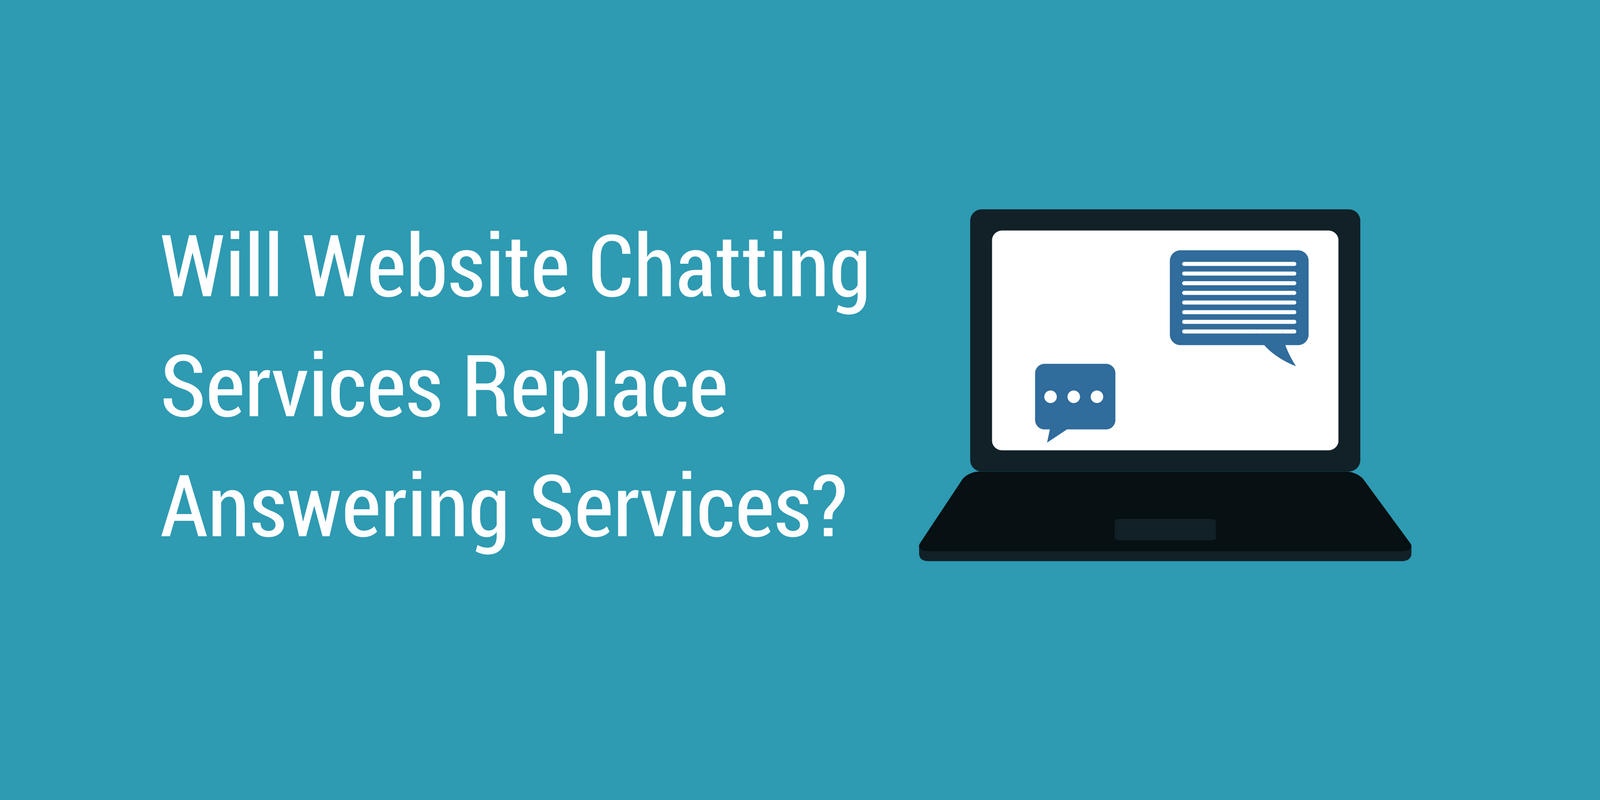 Will Website Chatting Services Replace Answering Services?